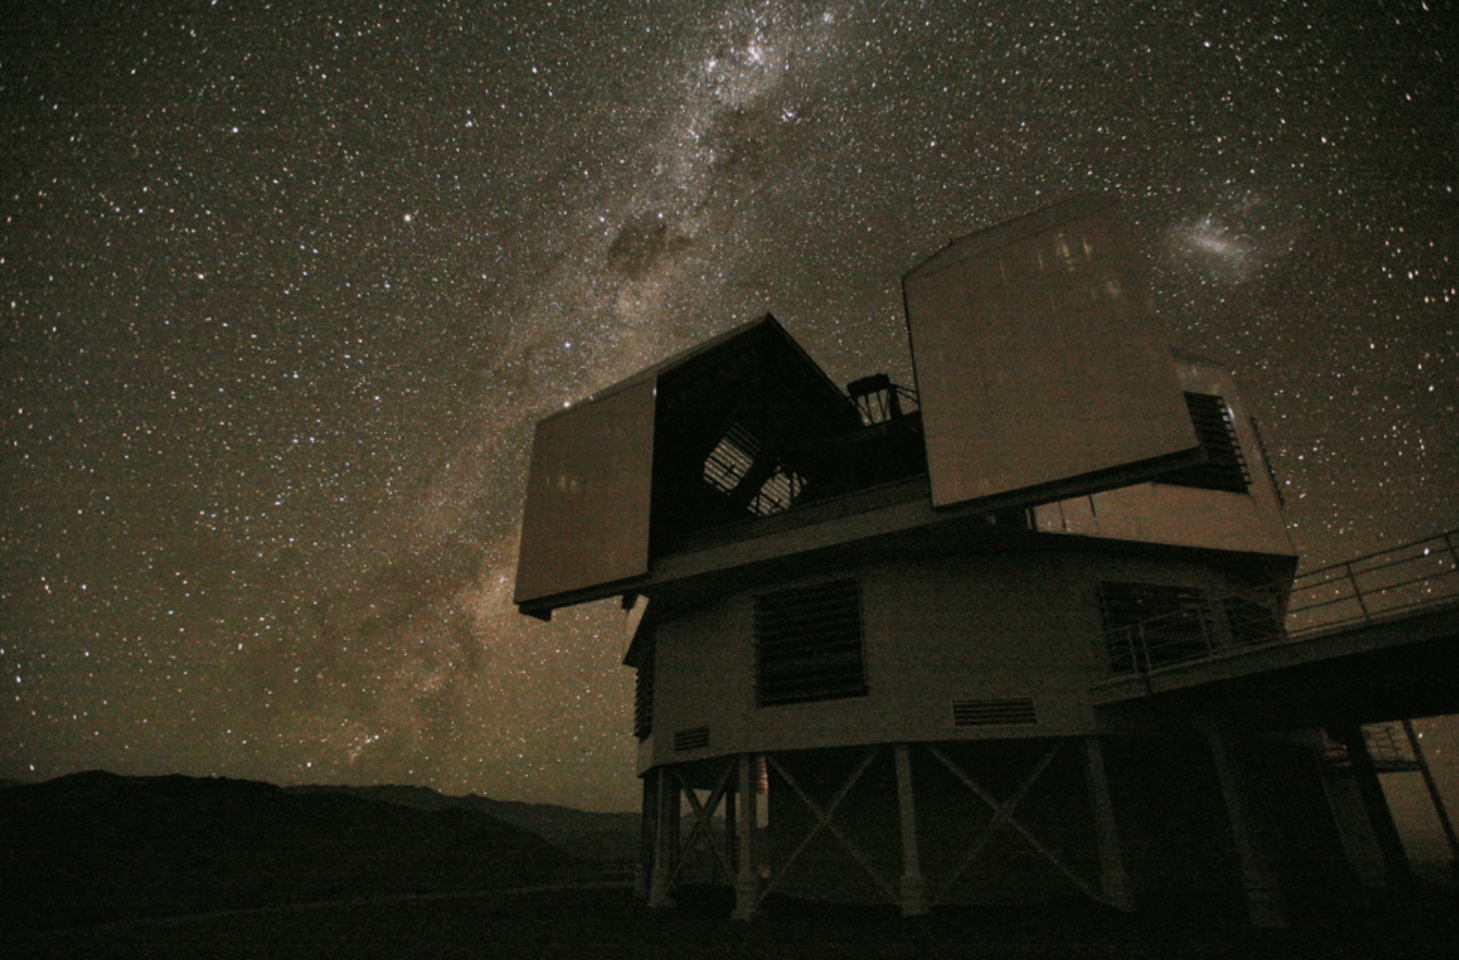 The 6.5m Magellan Baade telescope at the Las Campanas Observatory, Chile.